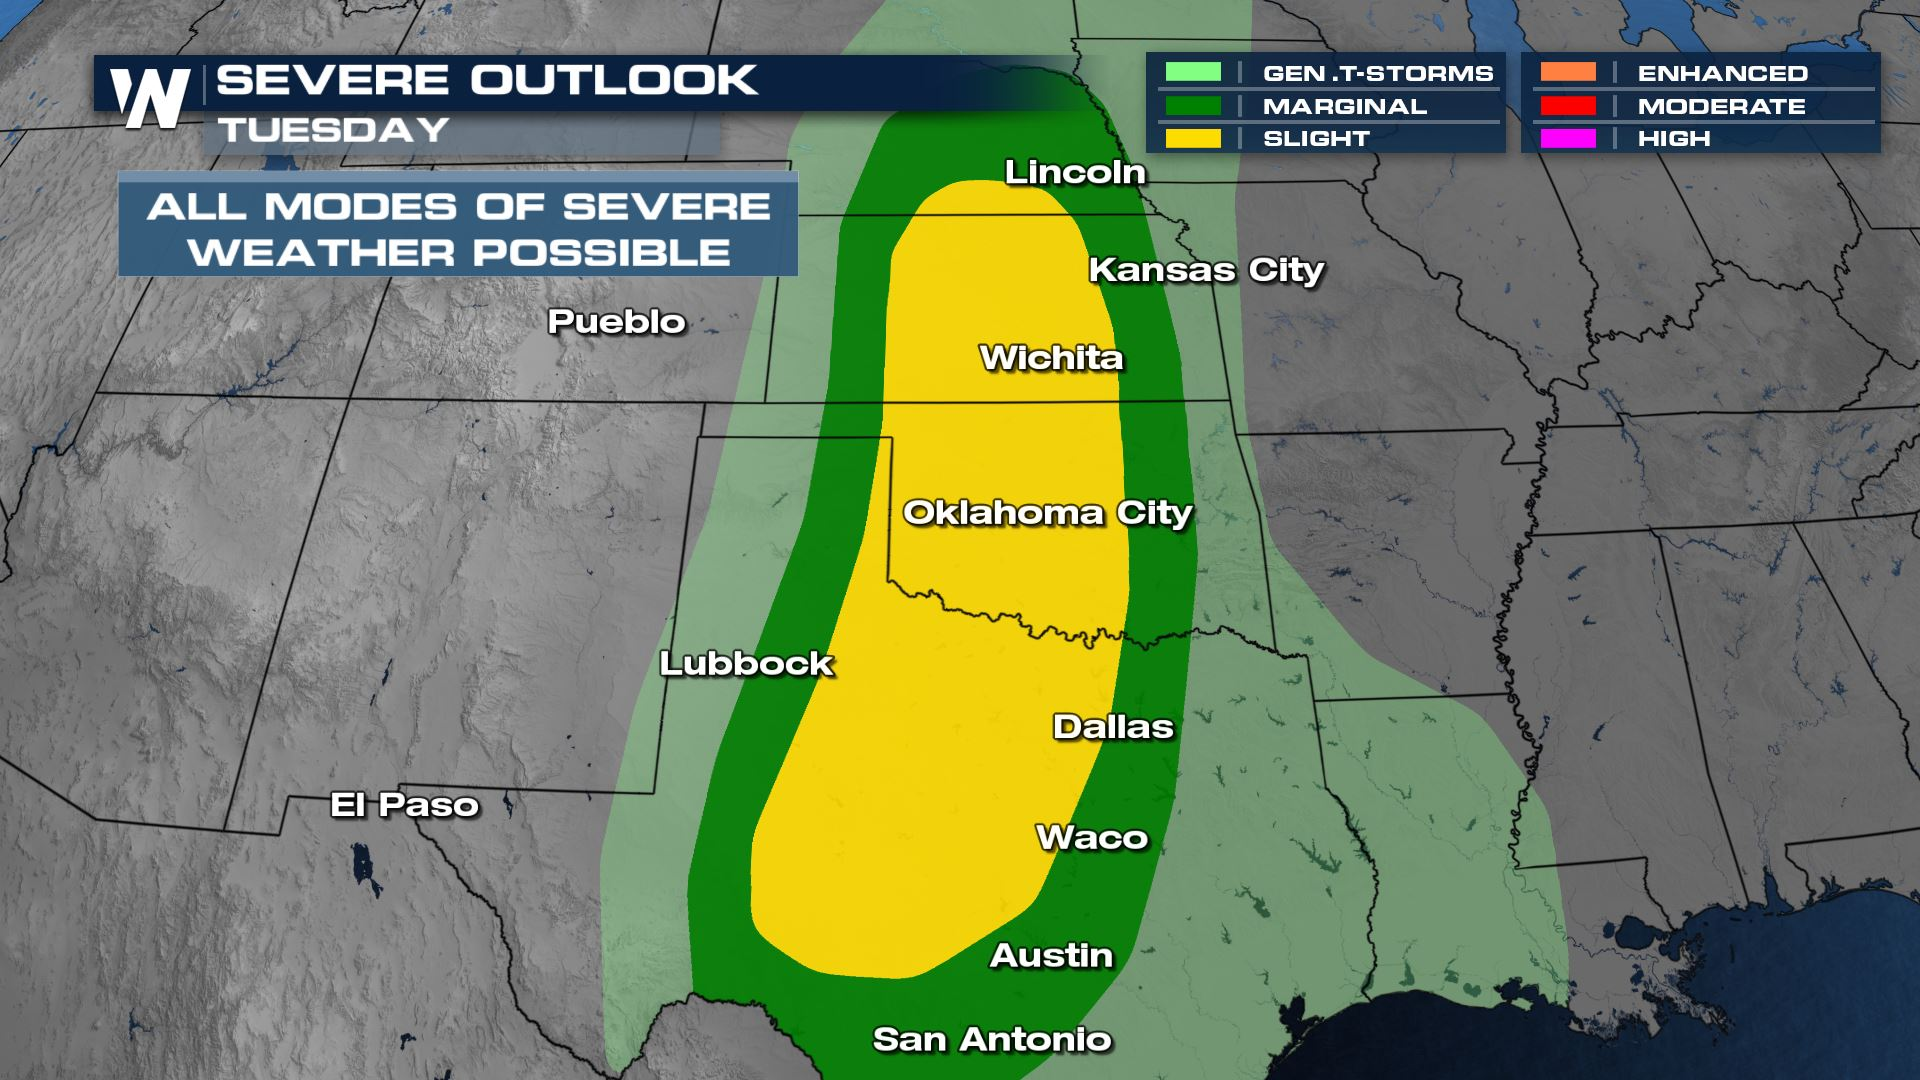 Severe Risk Increasing for the Plains Tuesday Wednesday